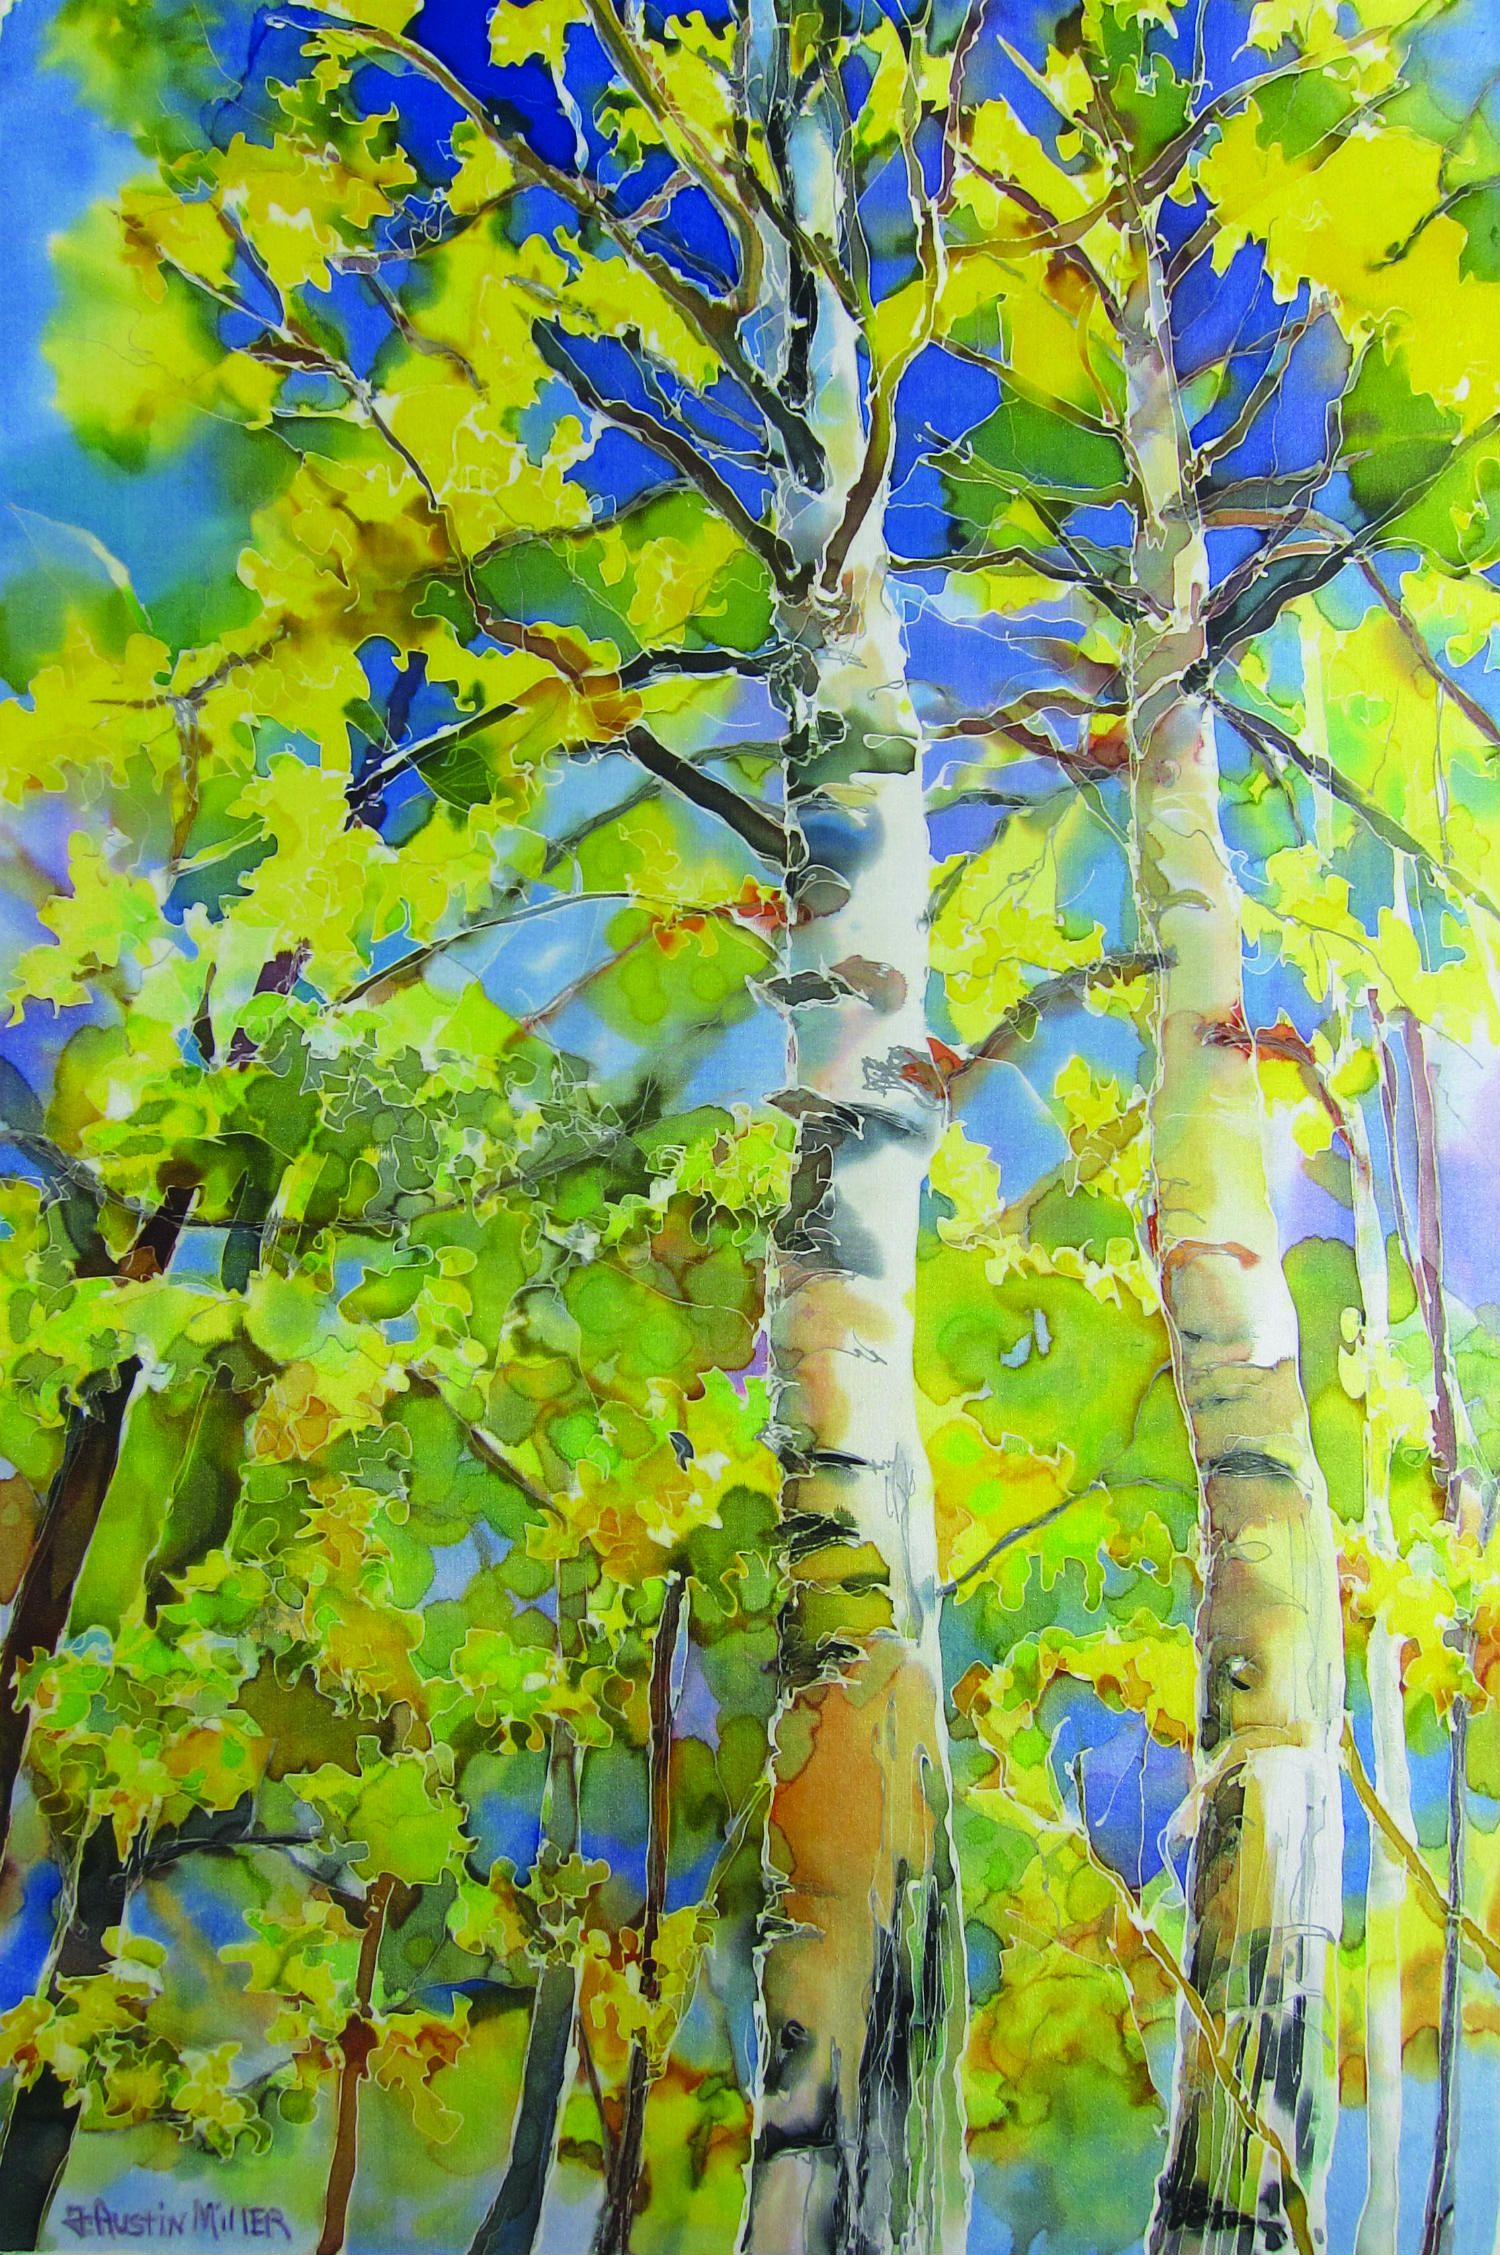 Trees painting by France Austin Miller